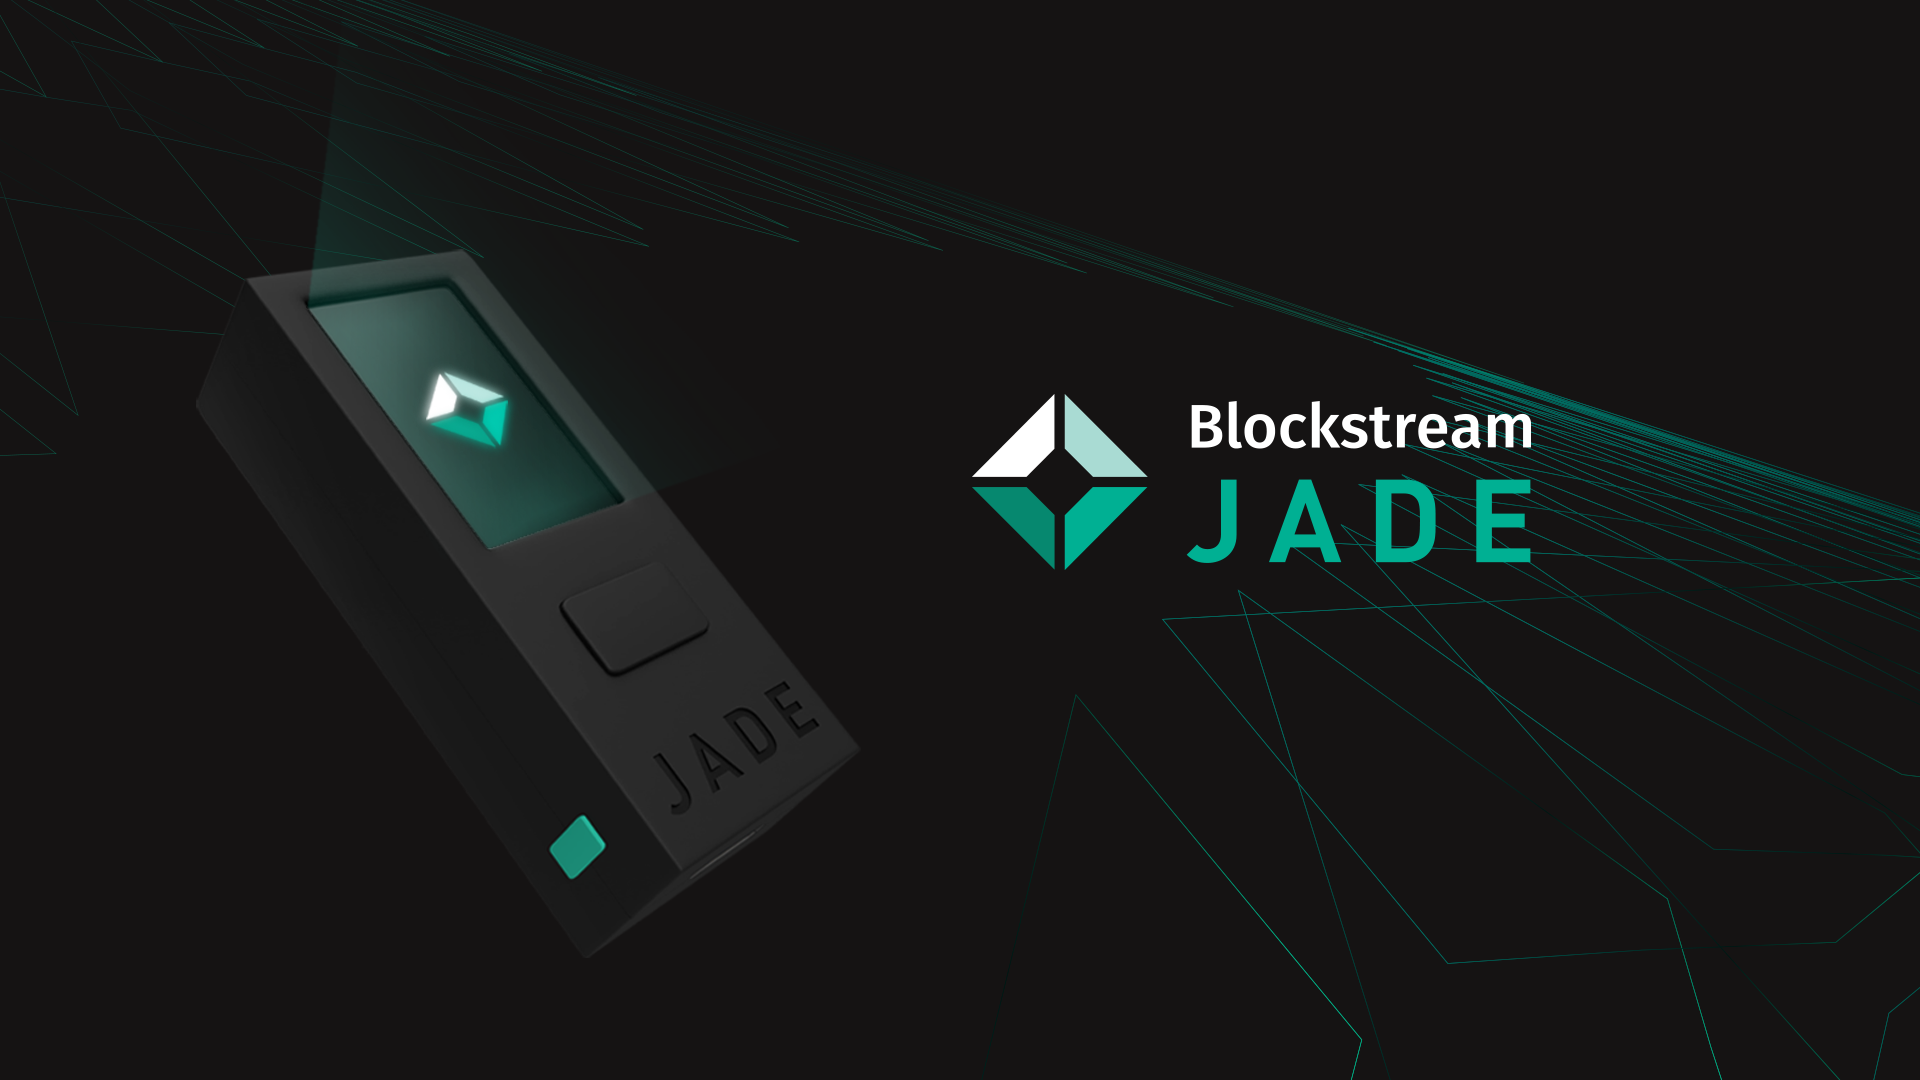 Secure Your Bitcoin and Liquid Assets With Blockstream Jade